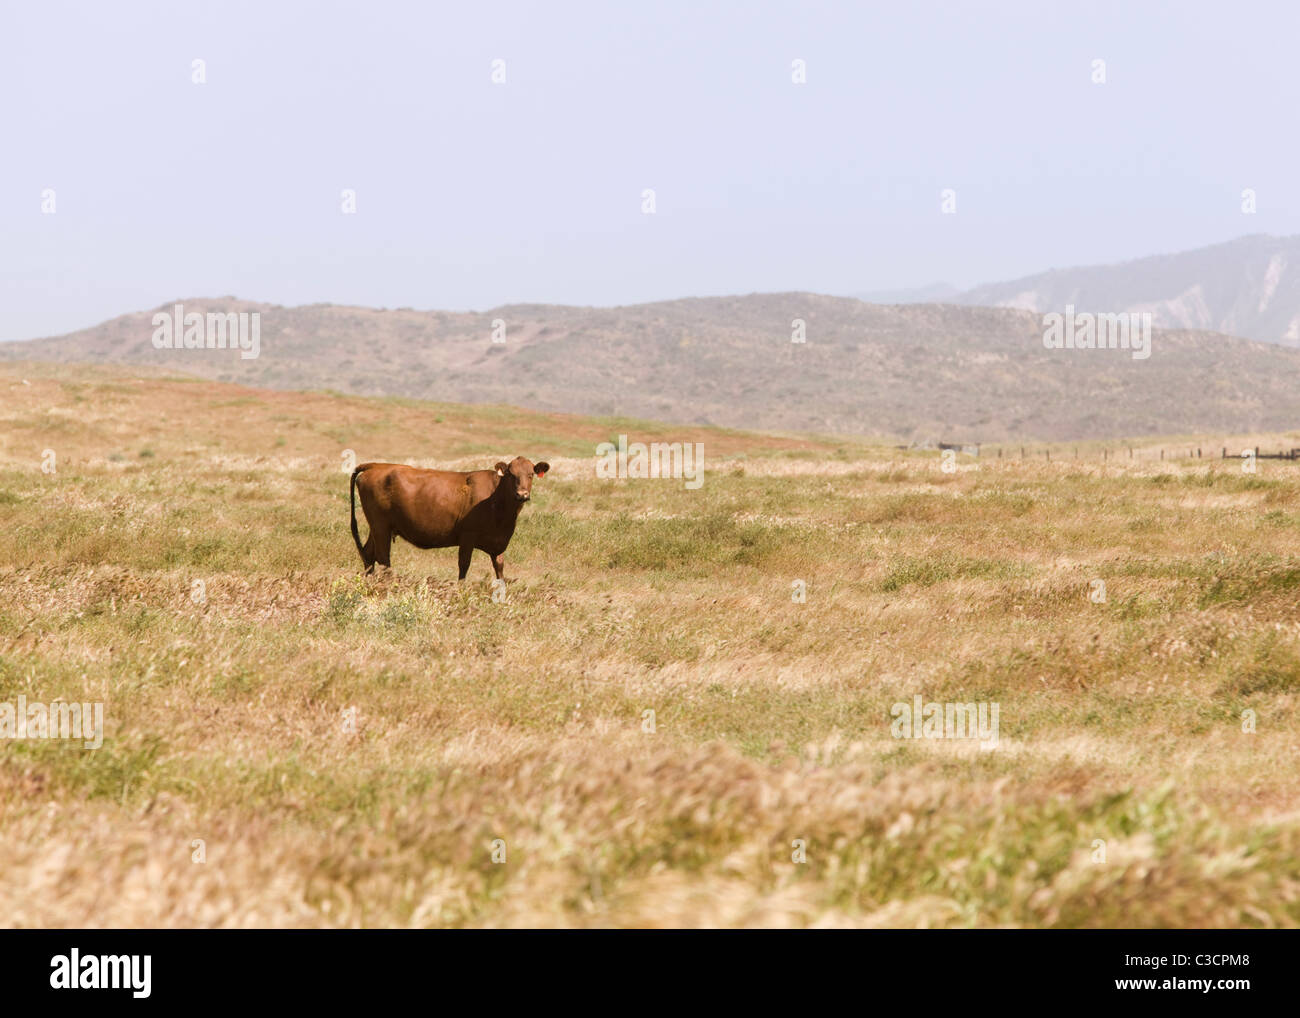 A lone cow standing in the middle of grassy field -  California USA - Stock Image